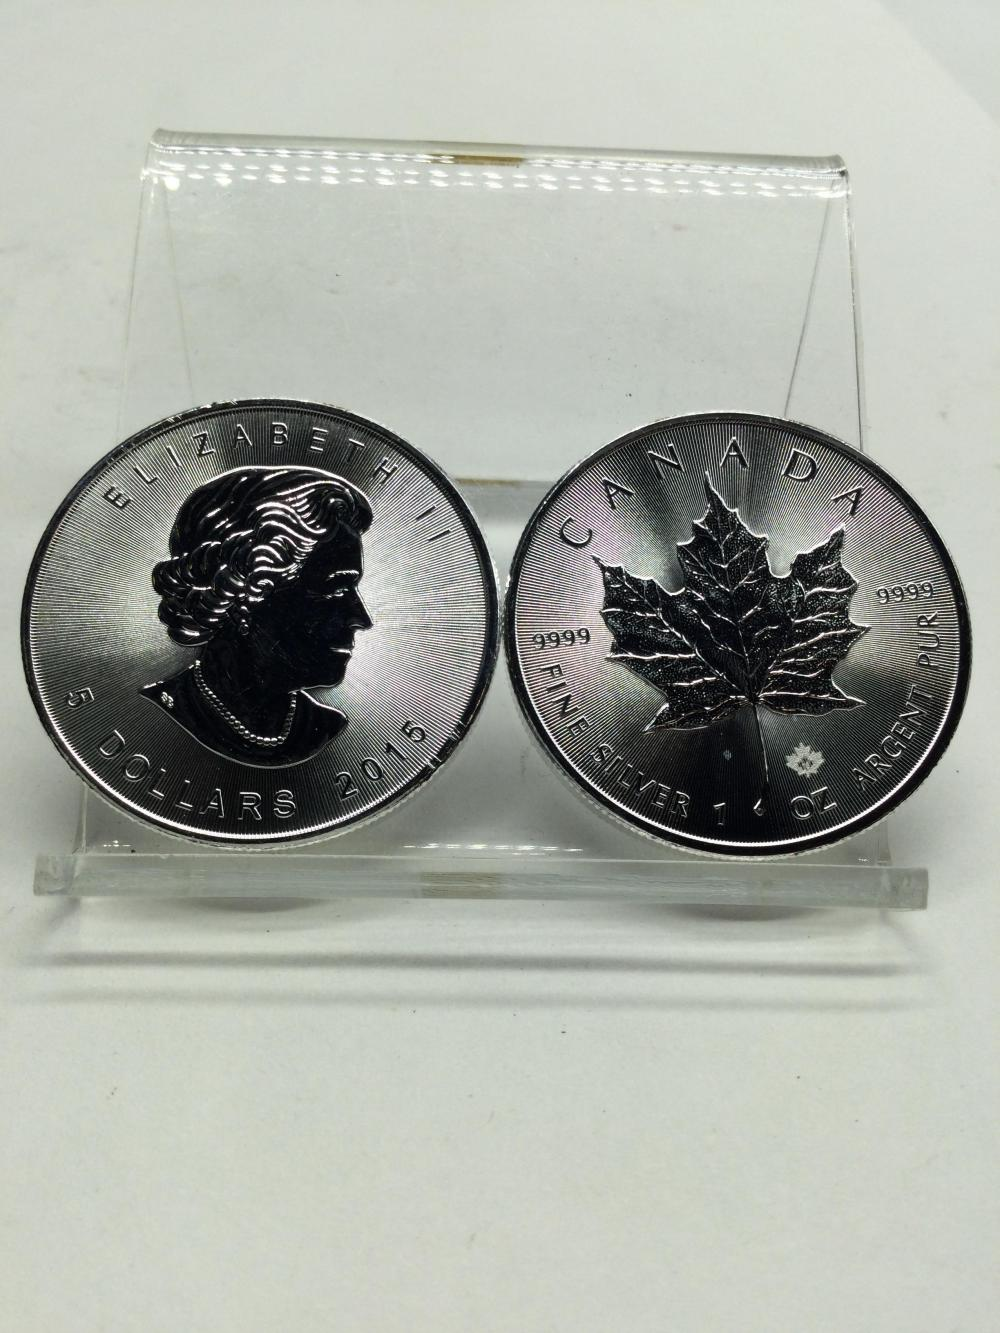 2 Canadian 1 Argent Ounce Fine Silver Coins